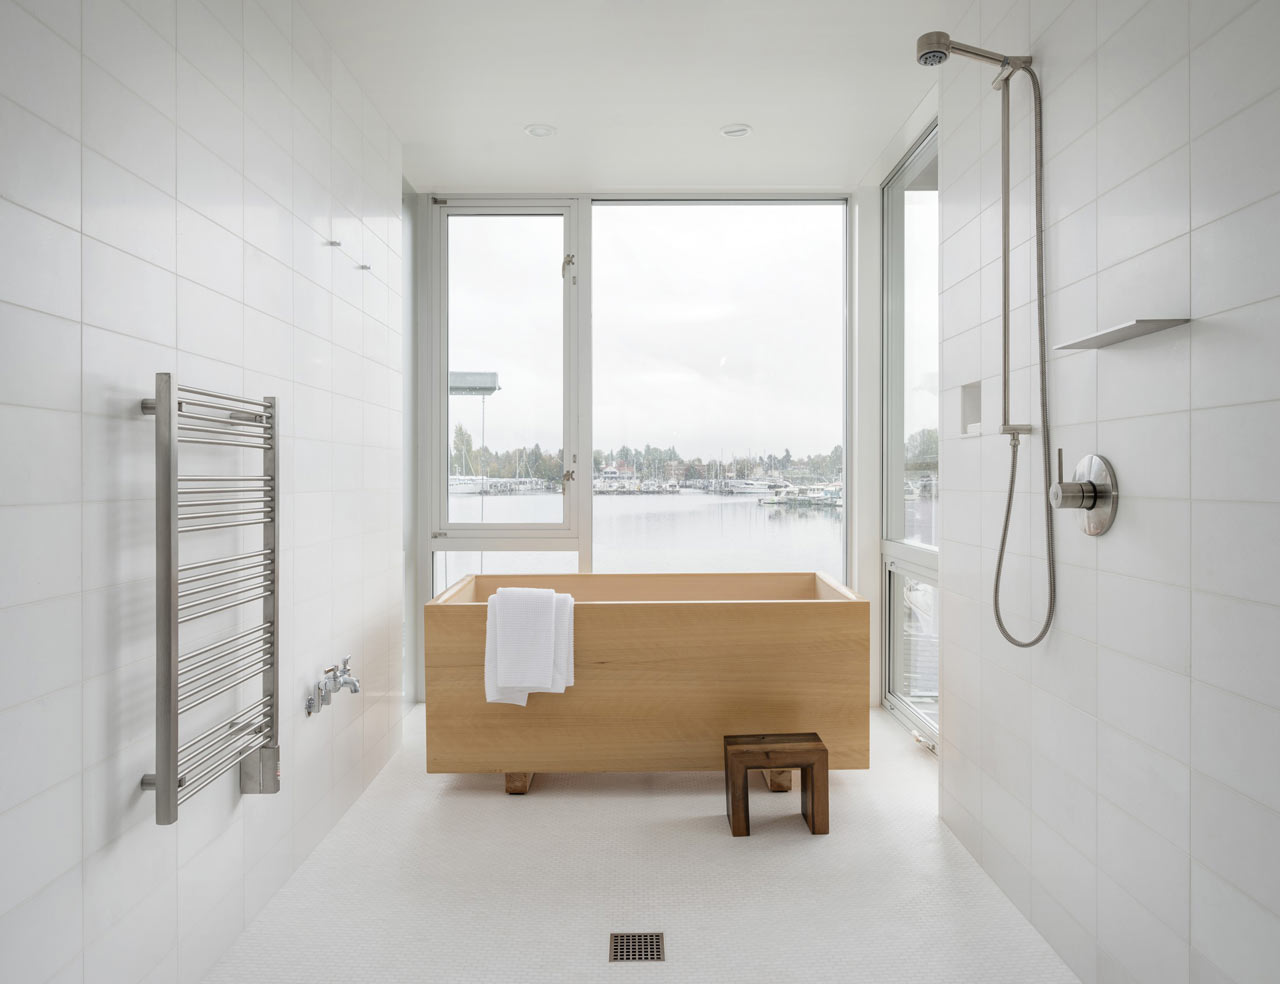 6 Easy Ways to Clear Out Bathroom Clutter This Weekend - Choose Minimalist Decor